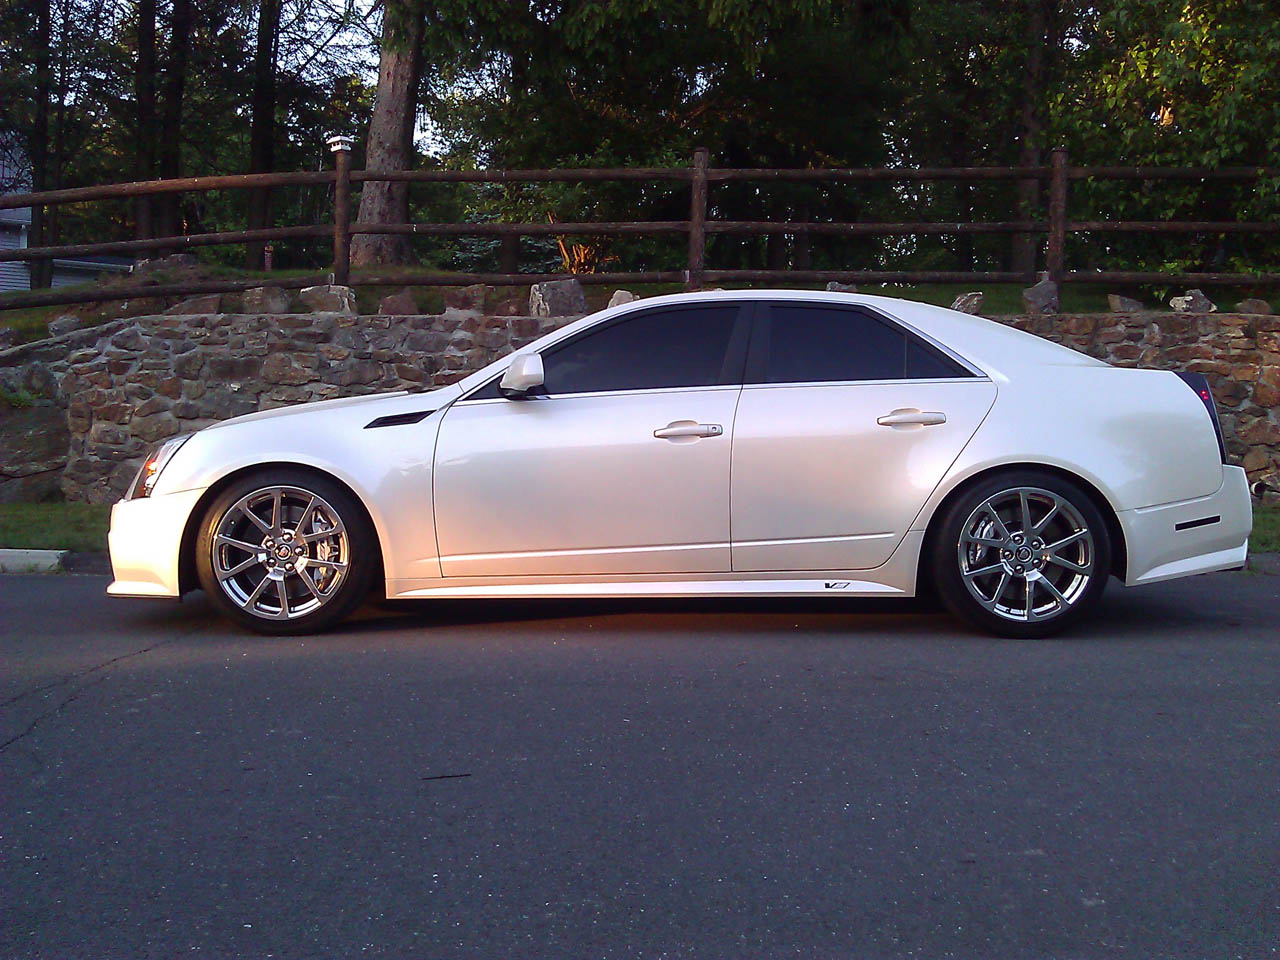 2009 White Cadillac CTS-V  picture, mods, upgrades